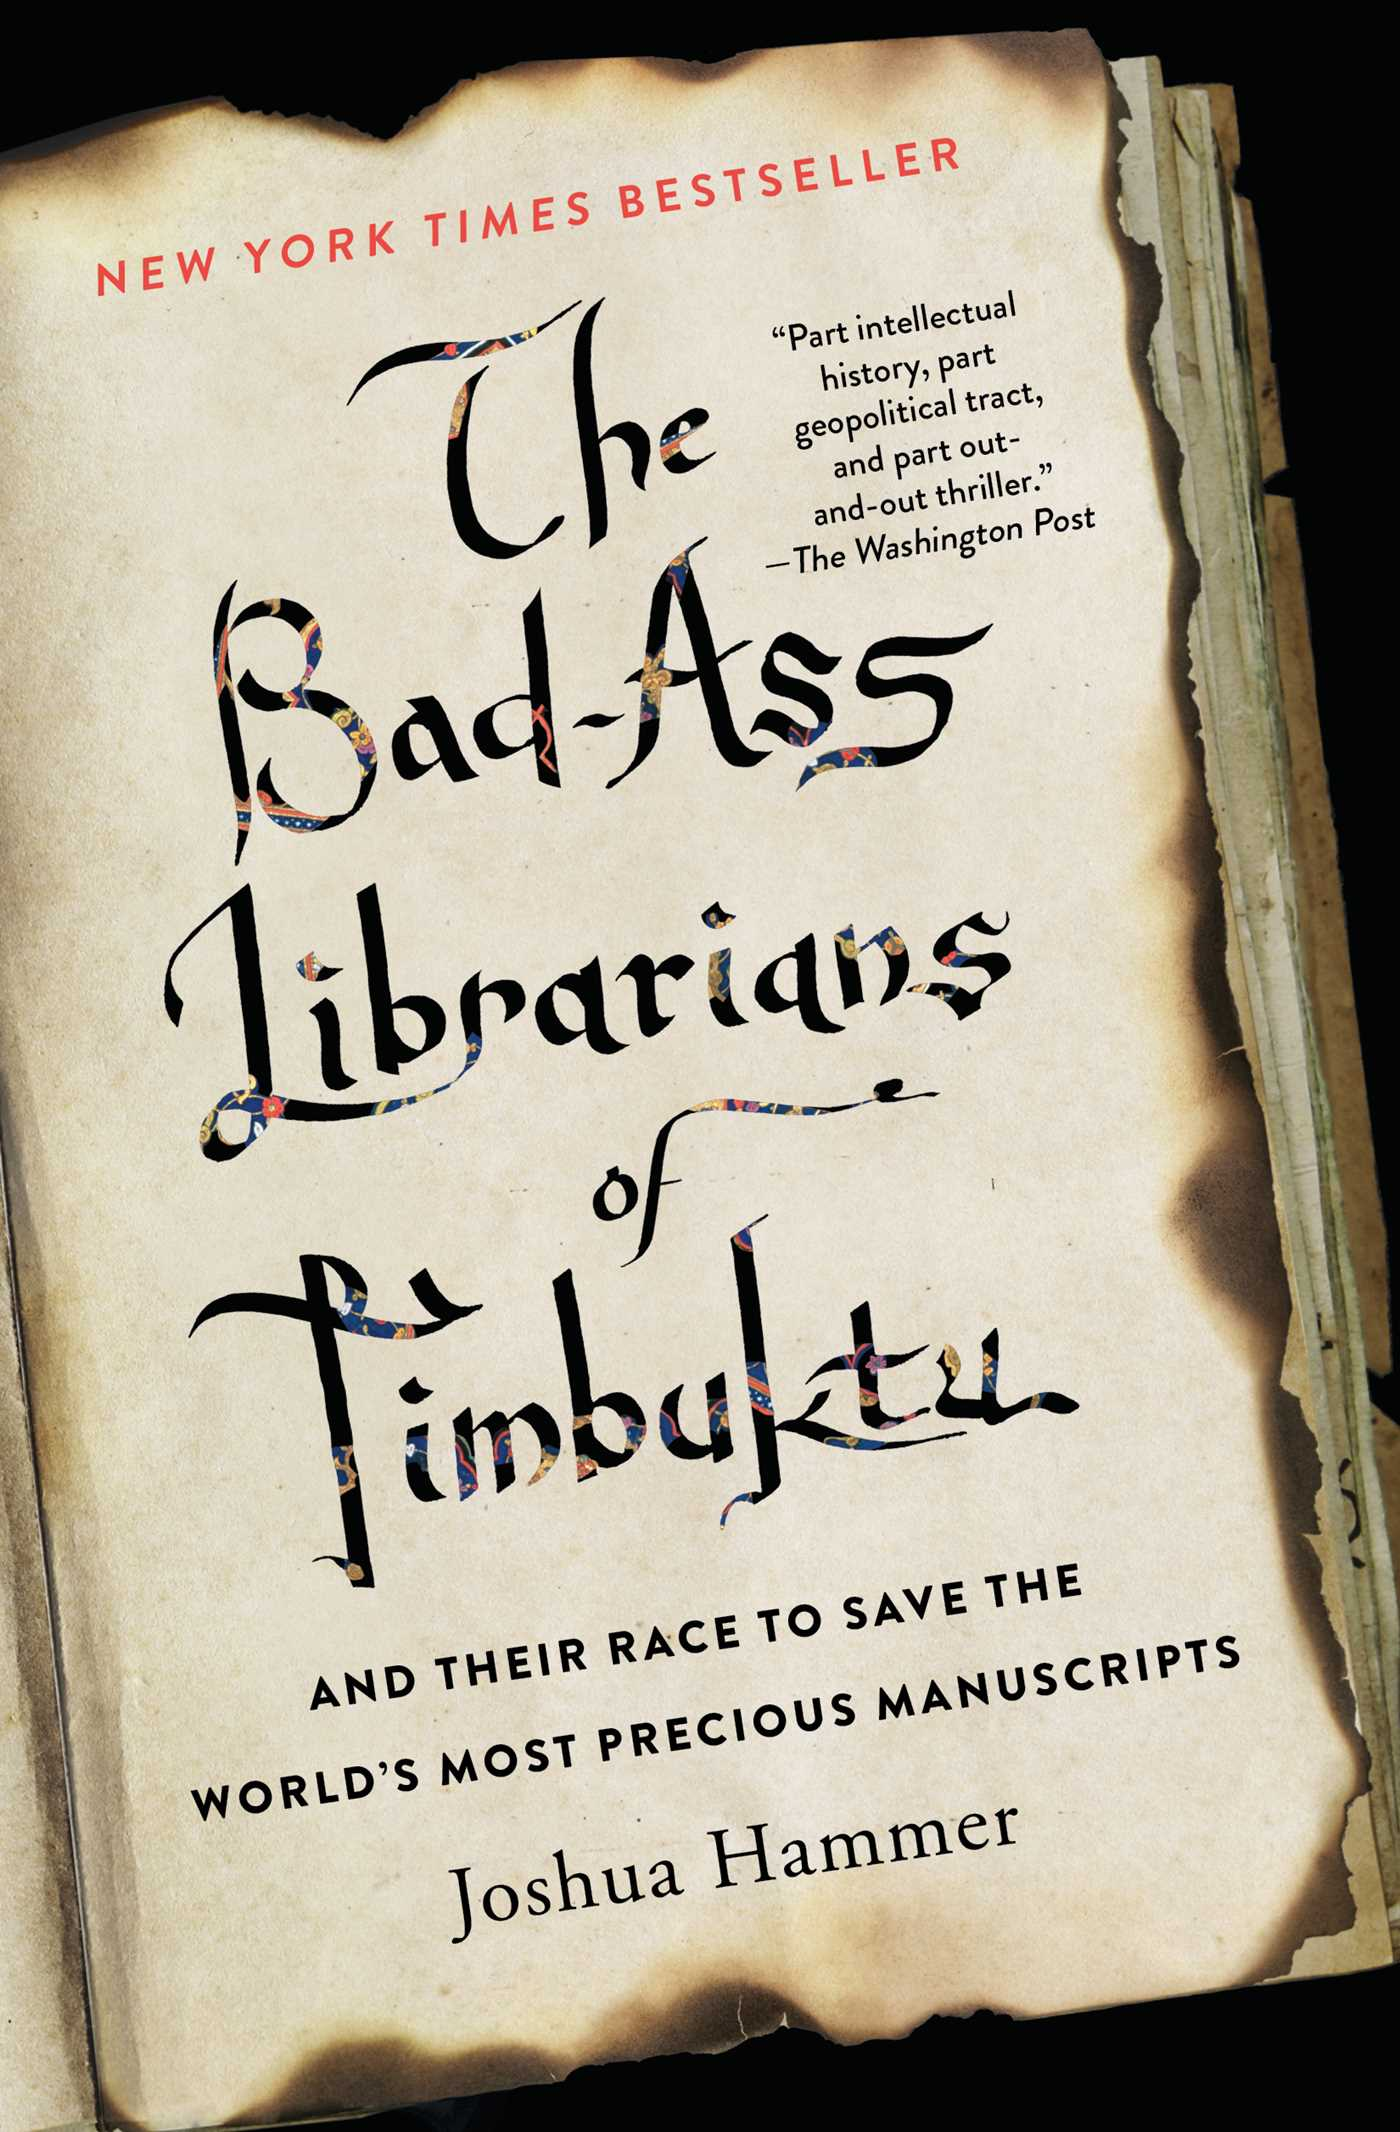 The bad ass librarians of timbuktu 9781476777412 hr